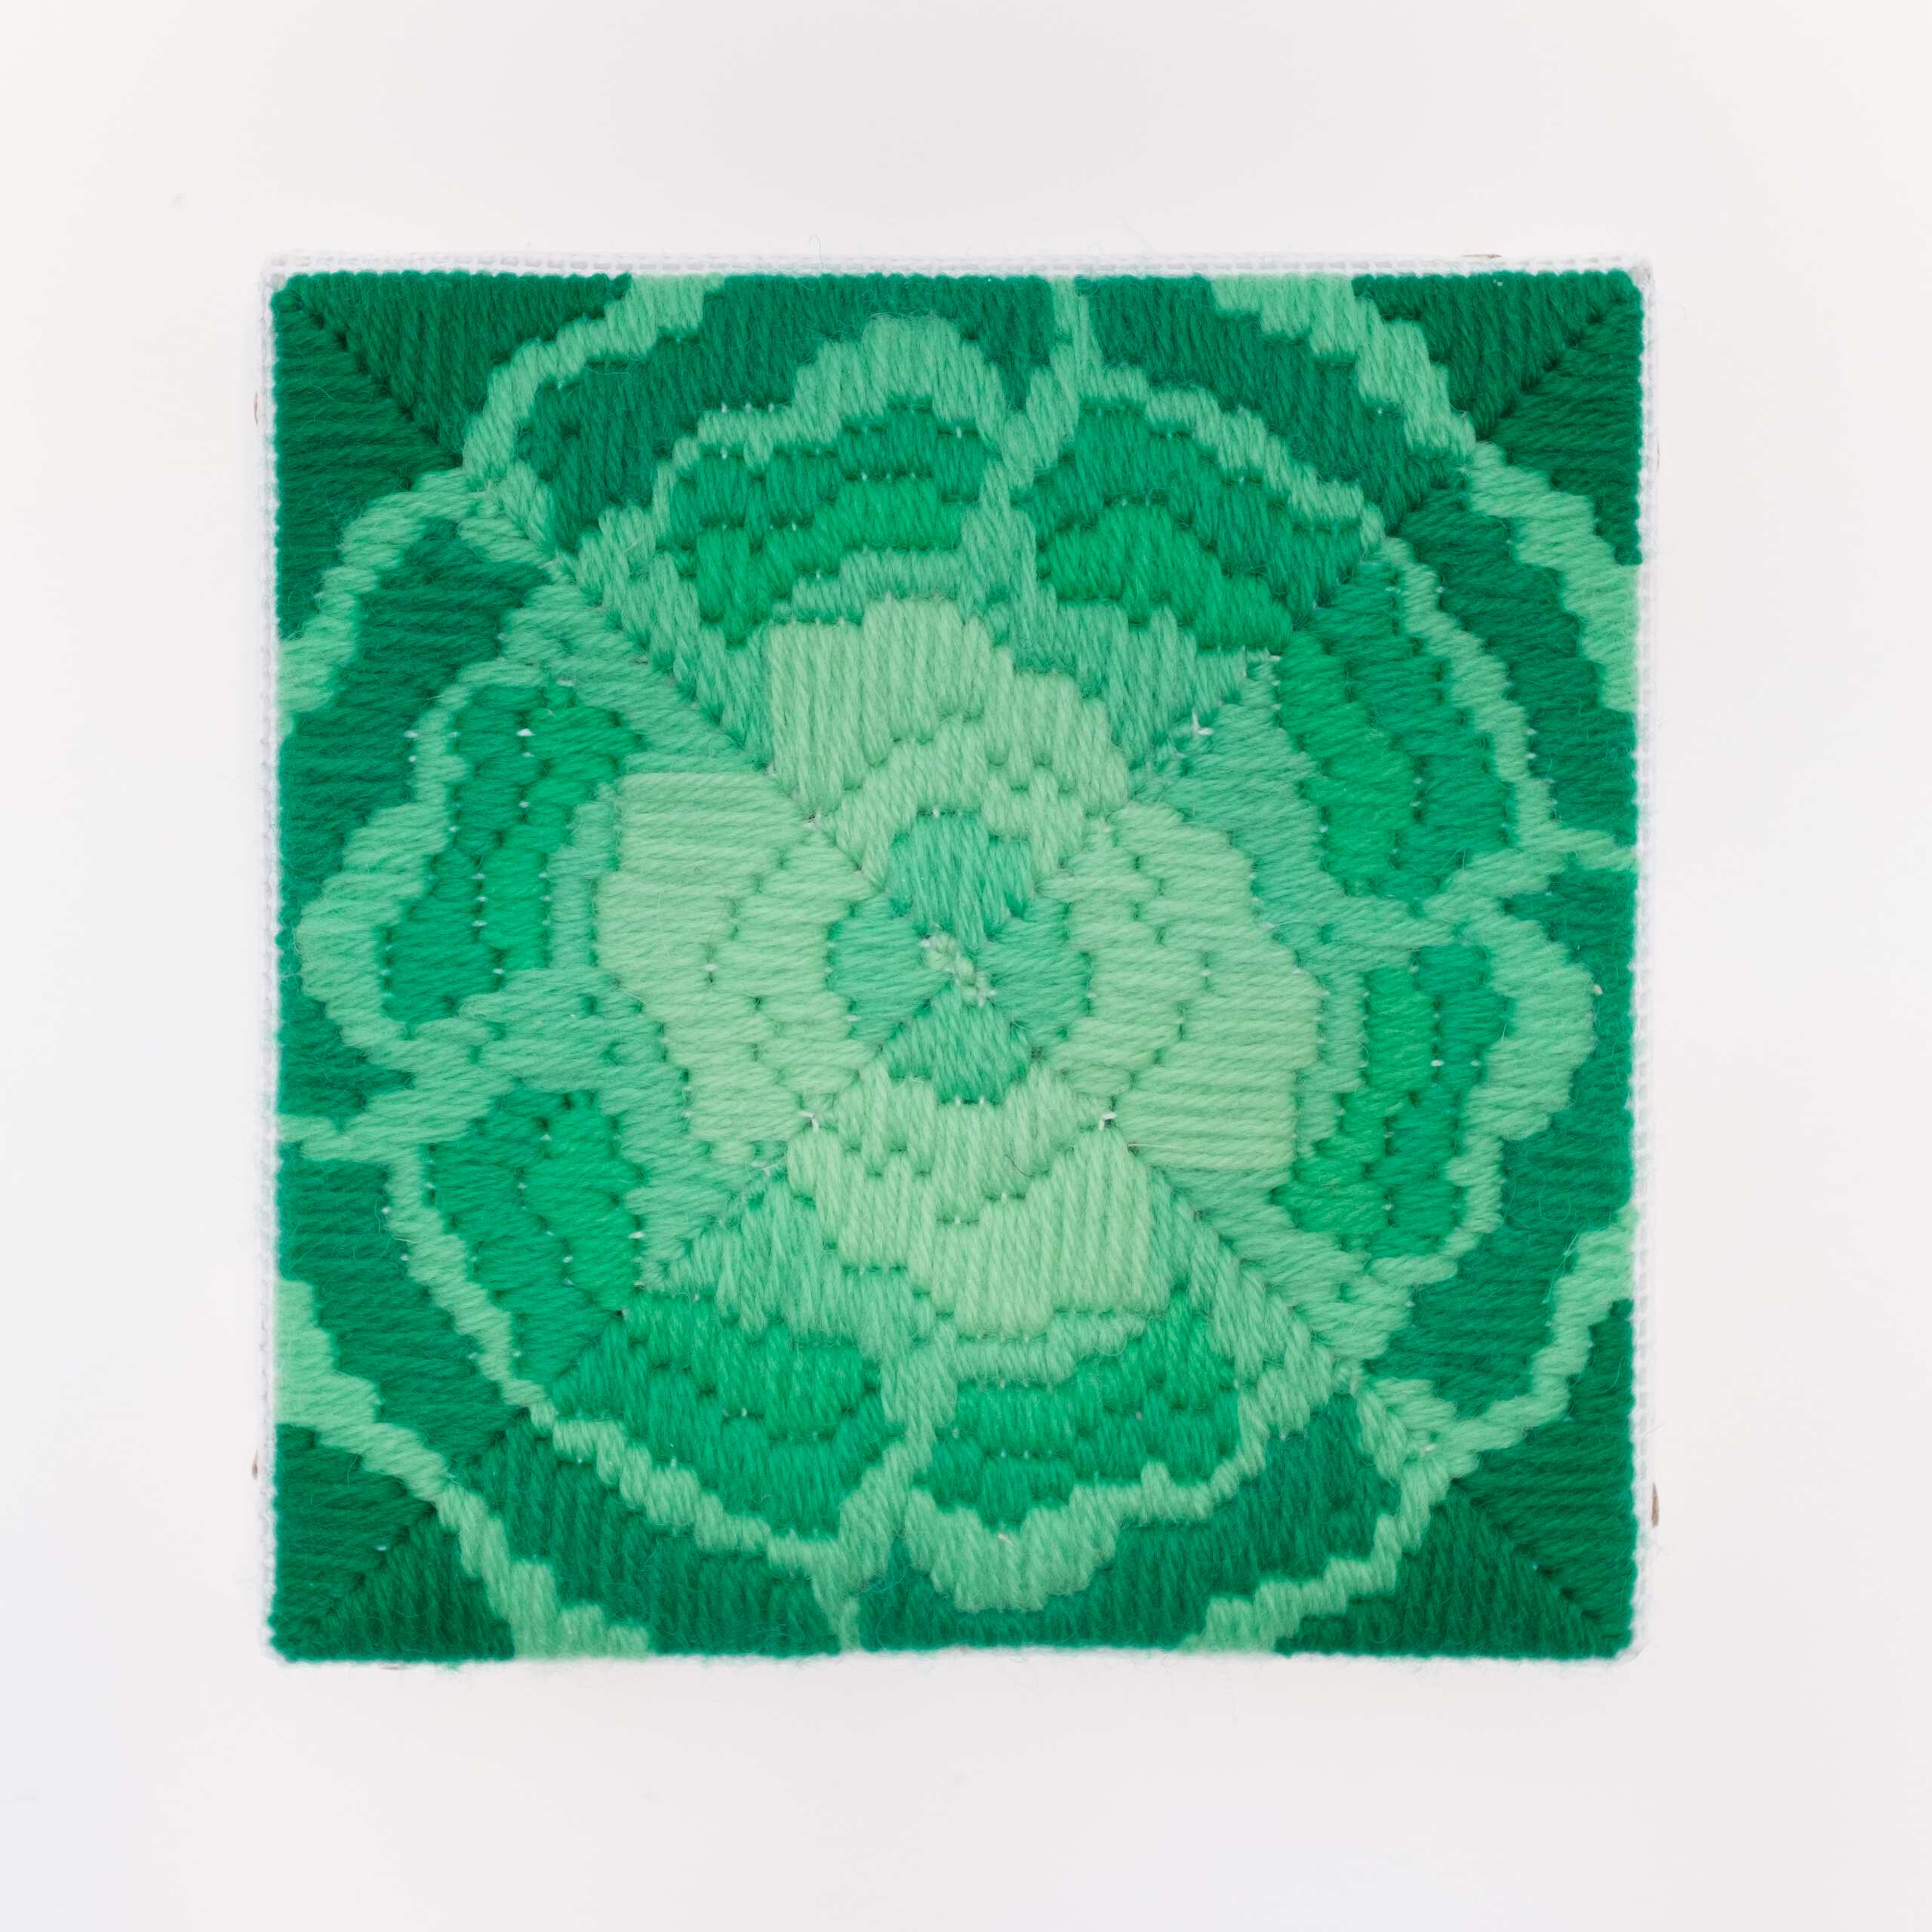 Depression Era [cast glass, green], Hand-embroidered wool on canvas over panel, 2020